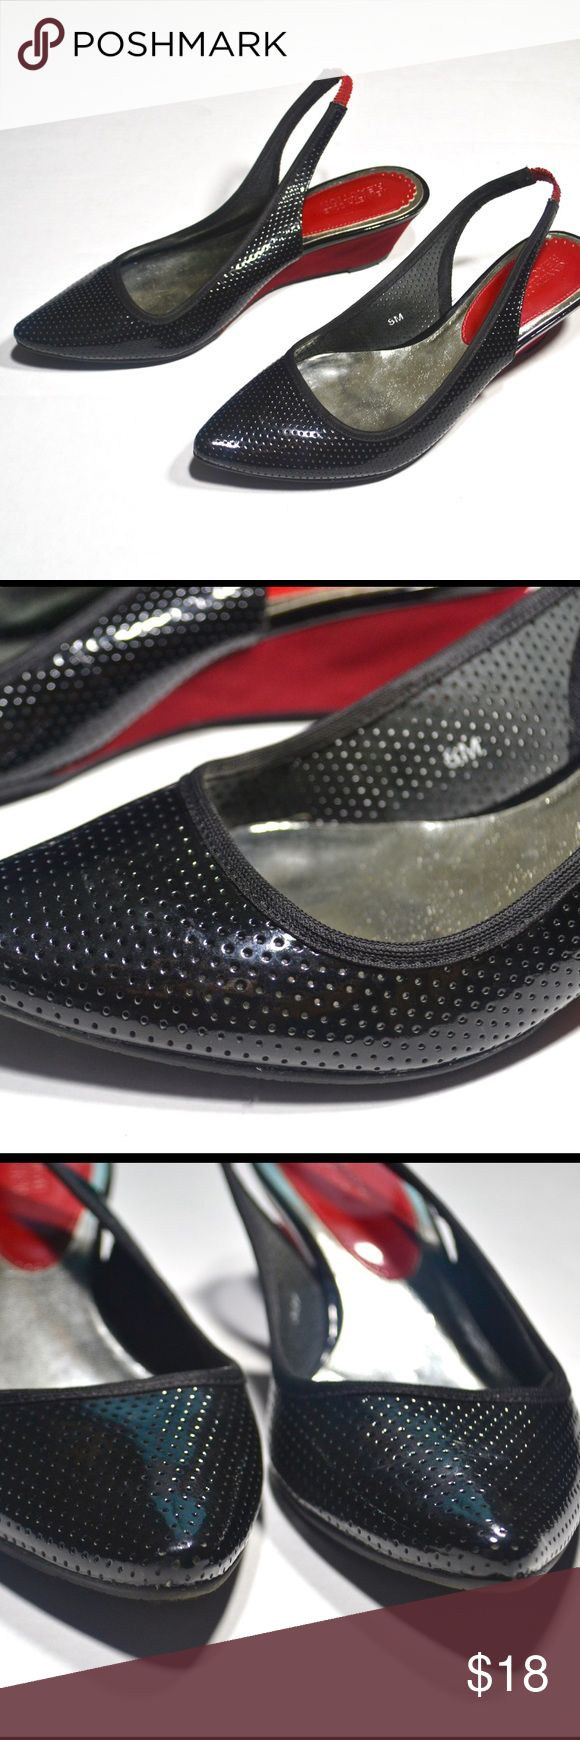 Kenneth Cole Reaction Slingbacks. Kenneth Cole Reaction Patent Leather Slingbacks with Red Wedge Heel (EUC). Kenneth Cole Reaction Shoes Wedges